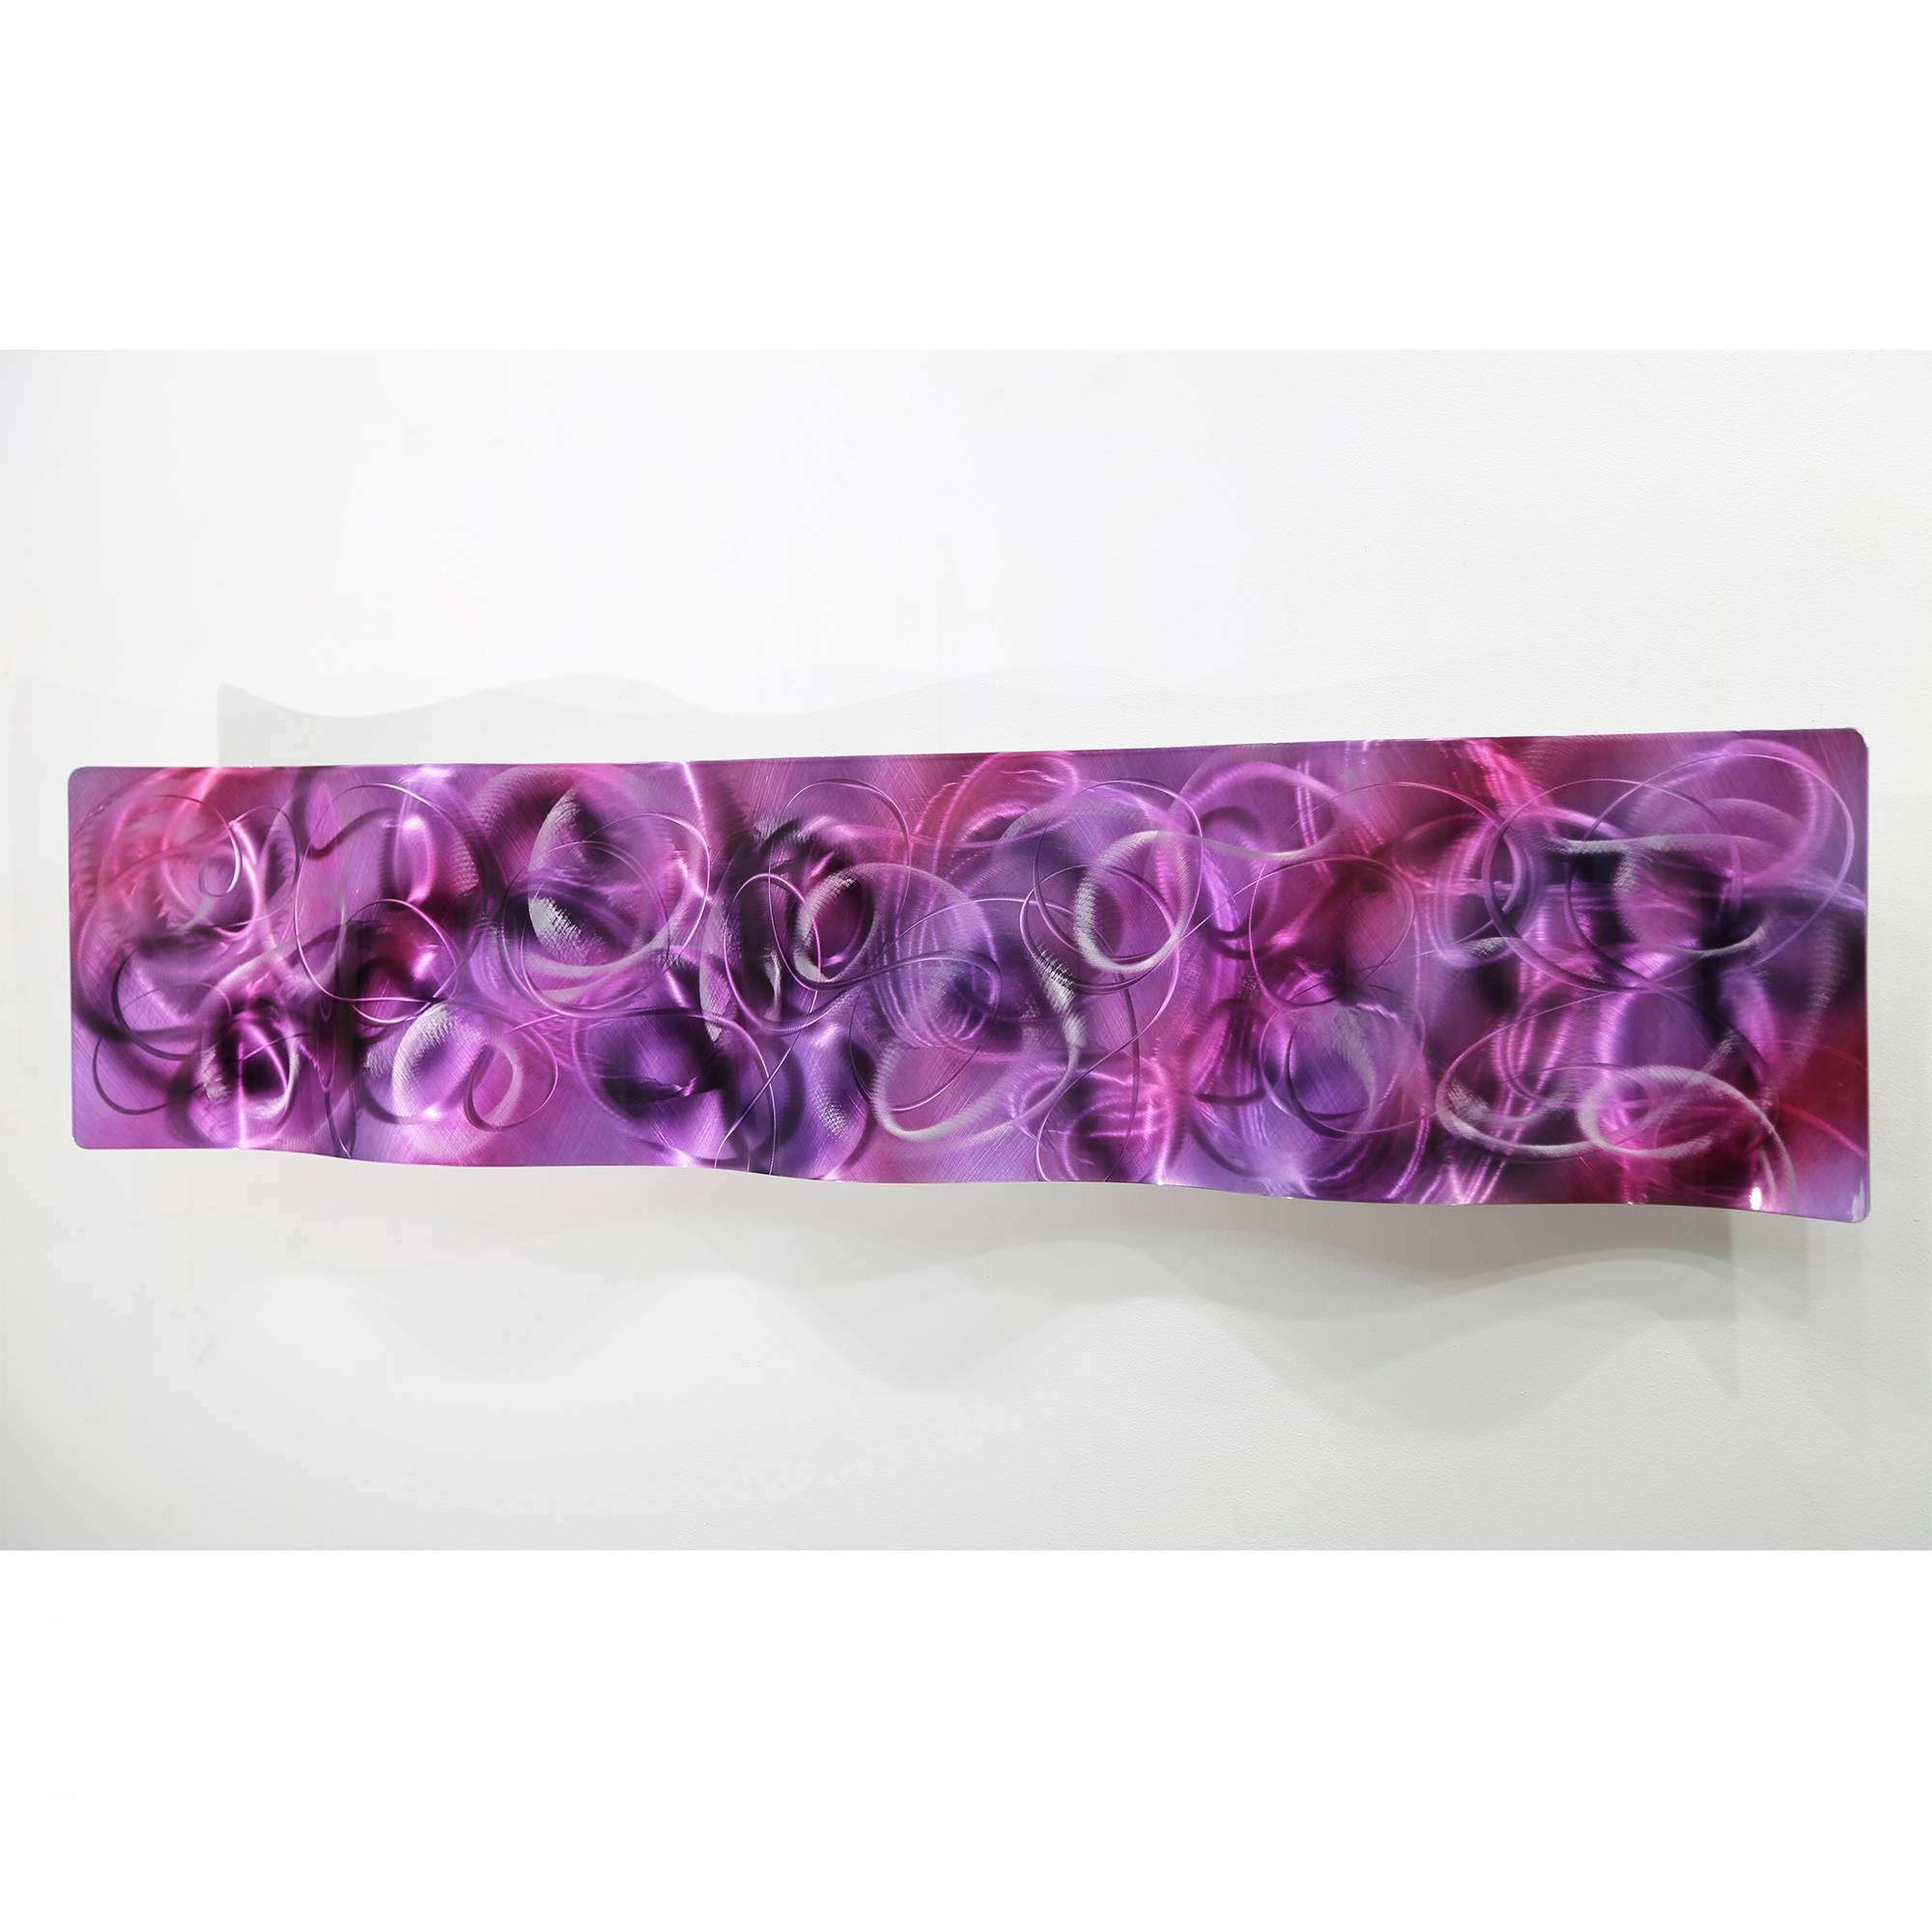 Metal Abstract Modern Painting Wall Art Sculpture Purple Majesty Throughout Most Up To Date Purple Abstract Wall Art (View 16 of 20)